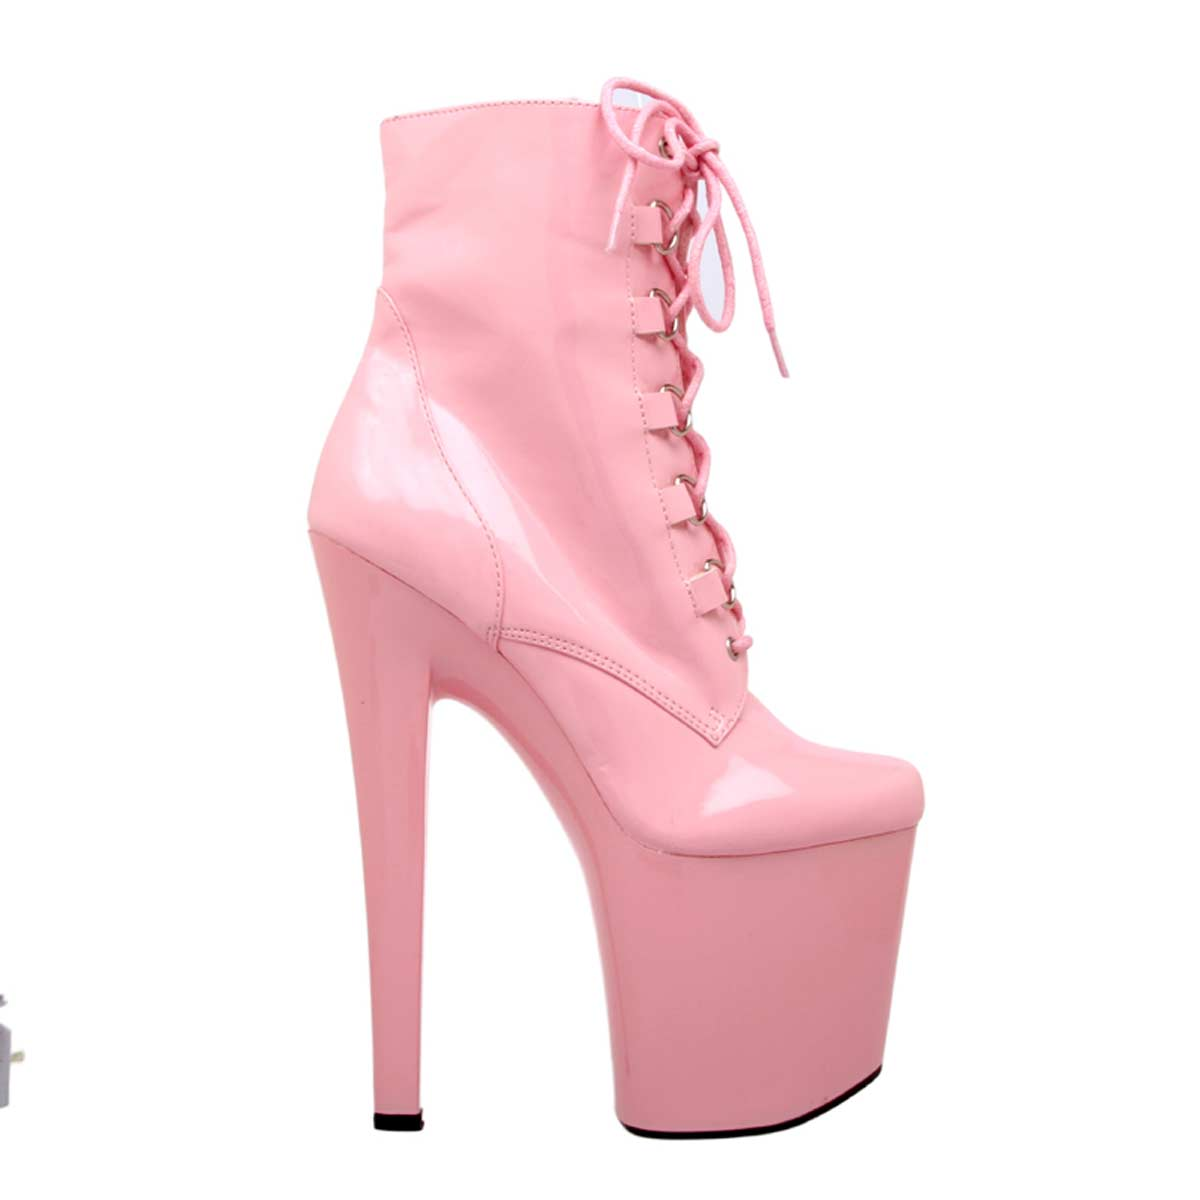 Highest Heel FANTASY-41 - Pink Patent PU in Boots - $88.99